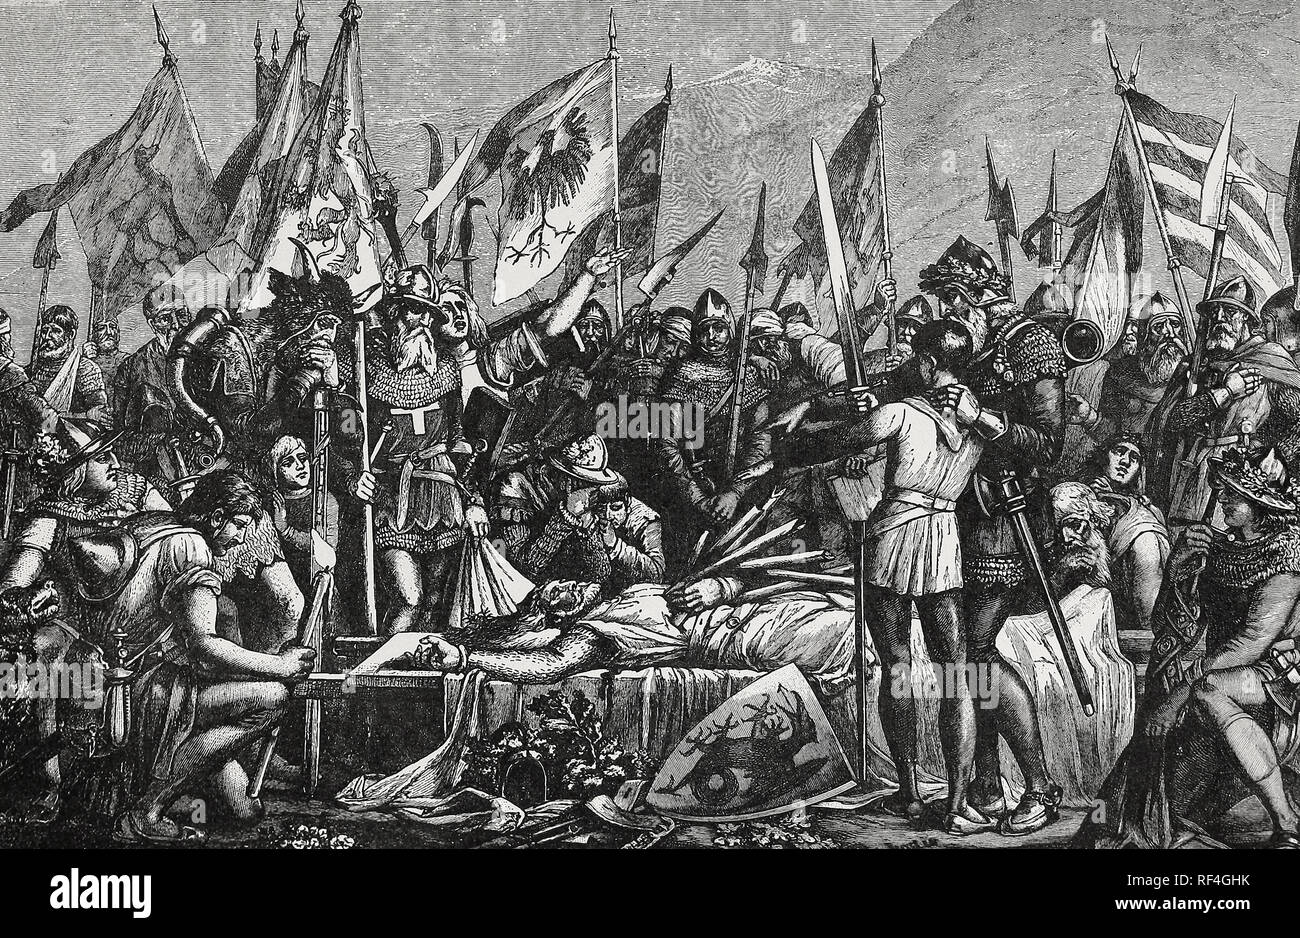 Arnold Winkelried - The Swiss Hero wins his countrymen the Battle of Sempach by sacrificing his own life - Stock Image